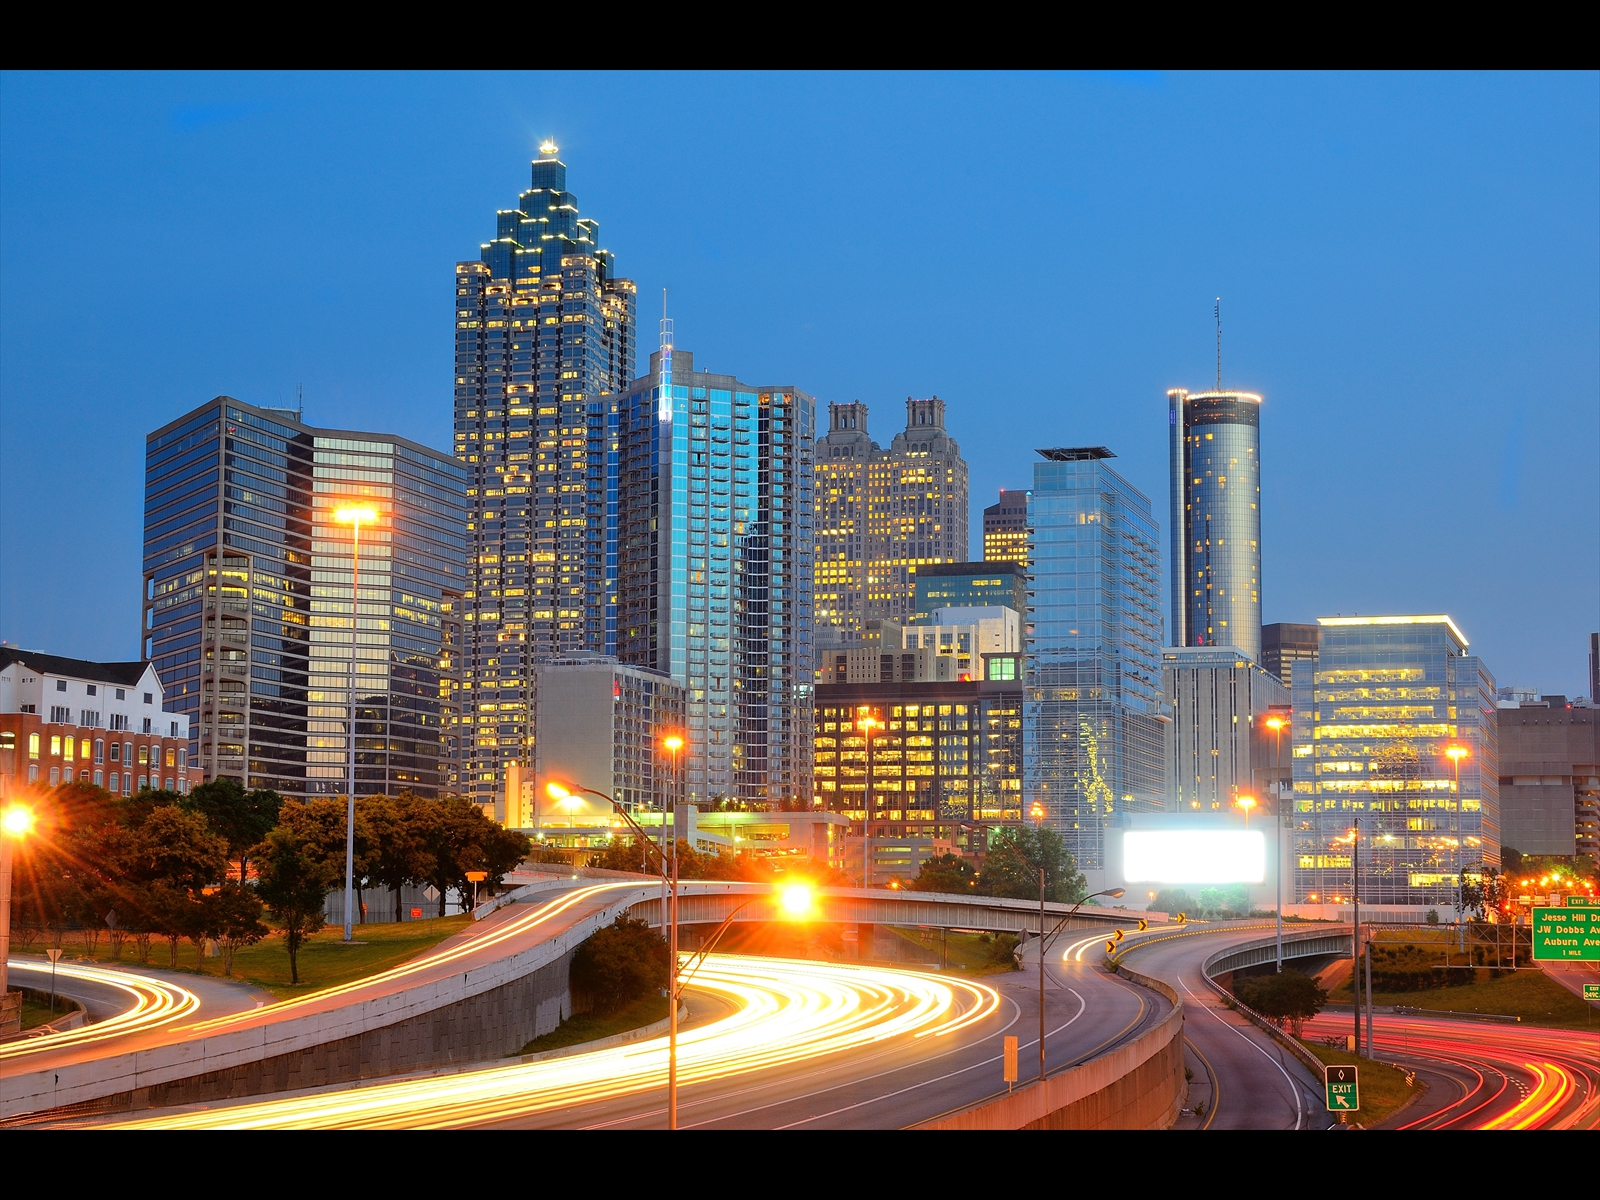 bigstock-Downtown-Atlanta-Georgia-skyl-26677367